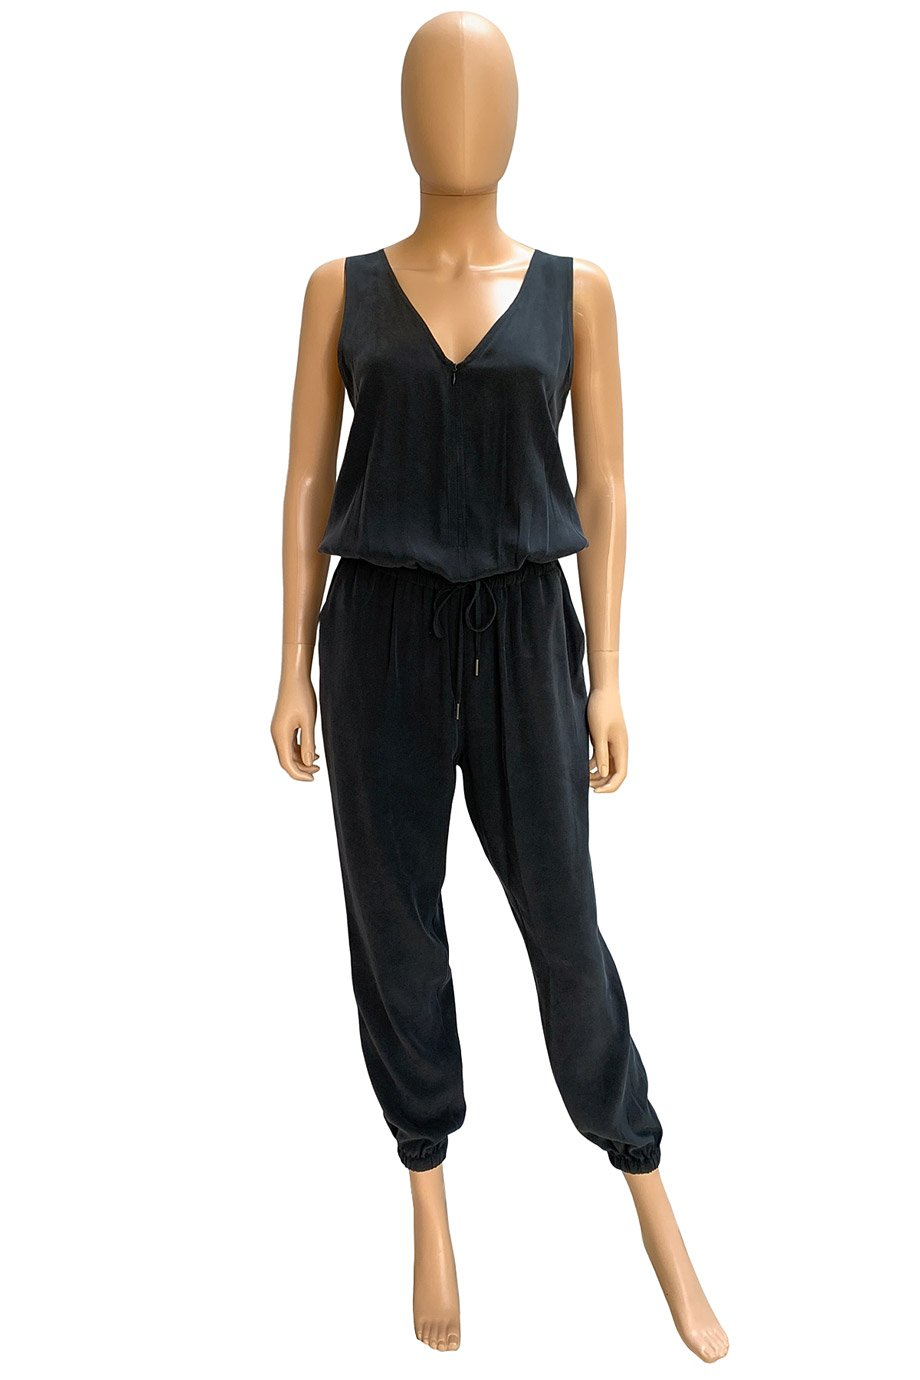 Frame Black Silk Charmeuse Sleeveless Le Zip Jumpsuit / Sz S